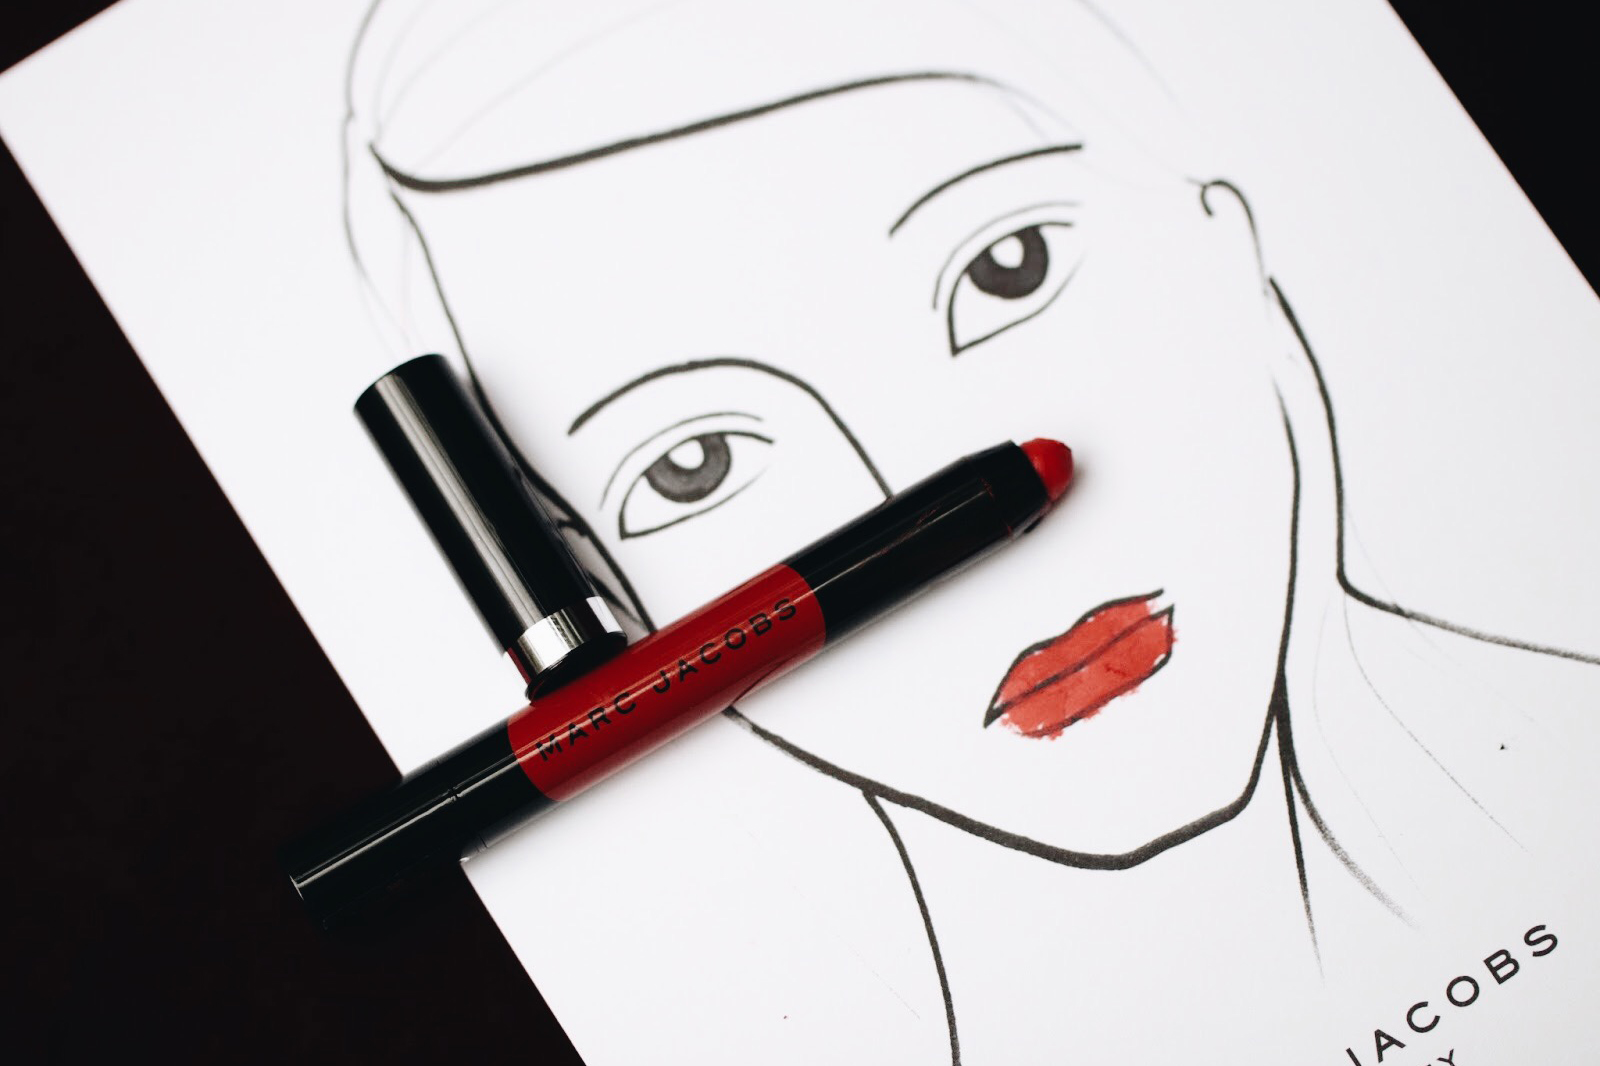 marc jacobs le marc liquid lip crayon rouge à lèvres avis test swatches